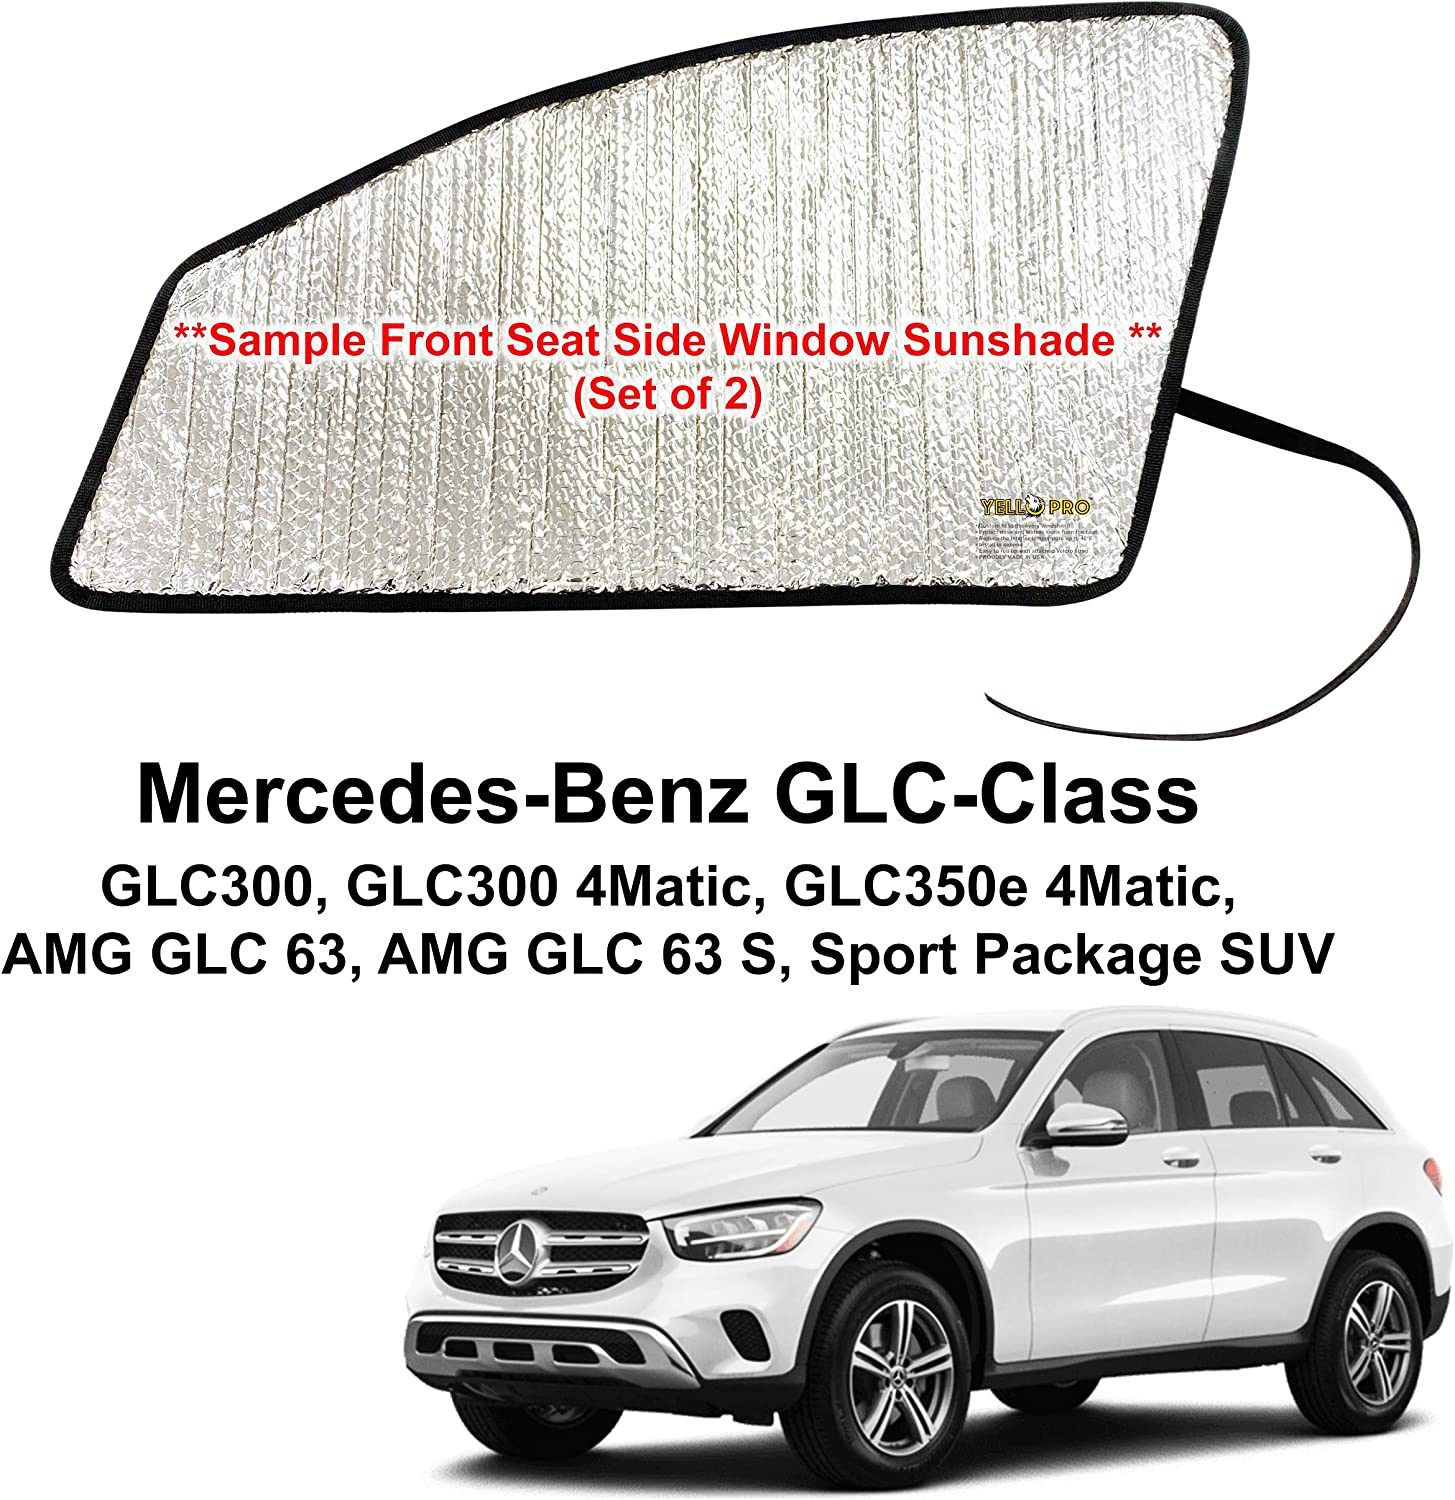 Covercraft UV11469GN Green Ice UVS 100 Custom Fit Sunscreen for Select Mercedes-Benz GLC300//GLC43 AMG Models Laminate Material 1 Pack